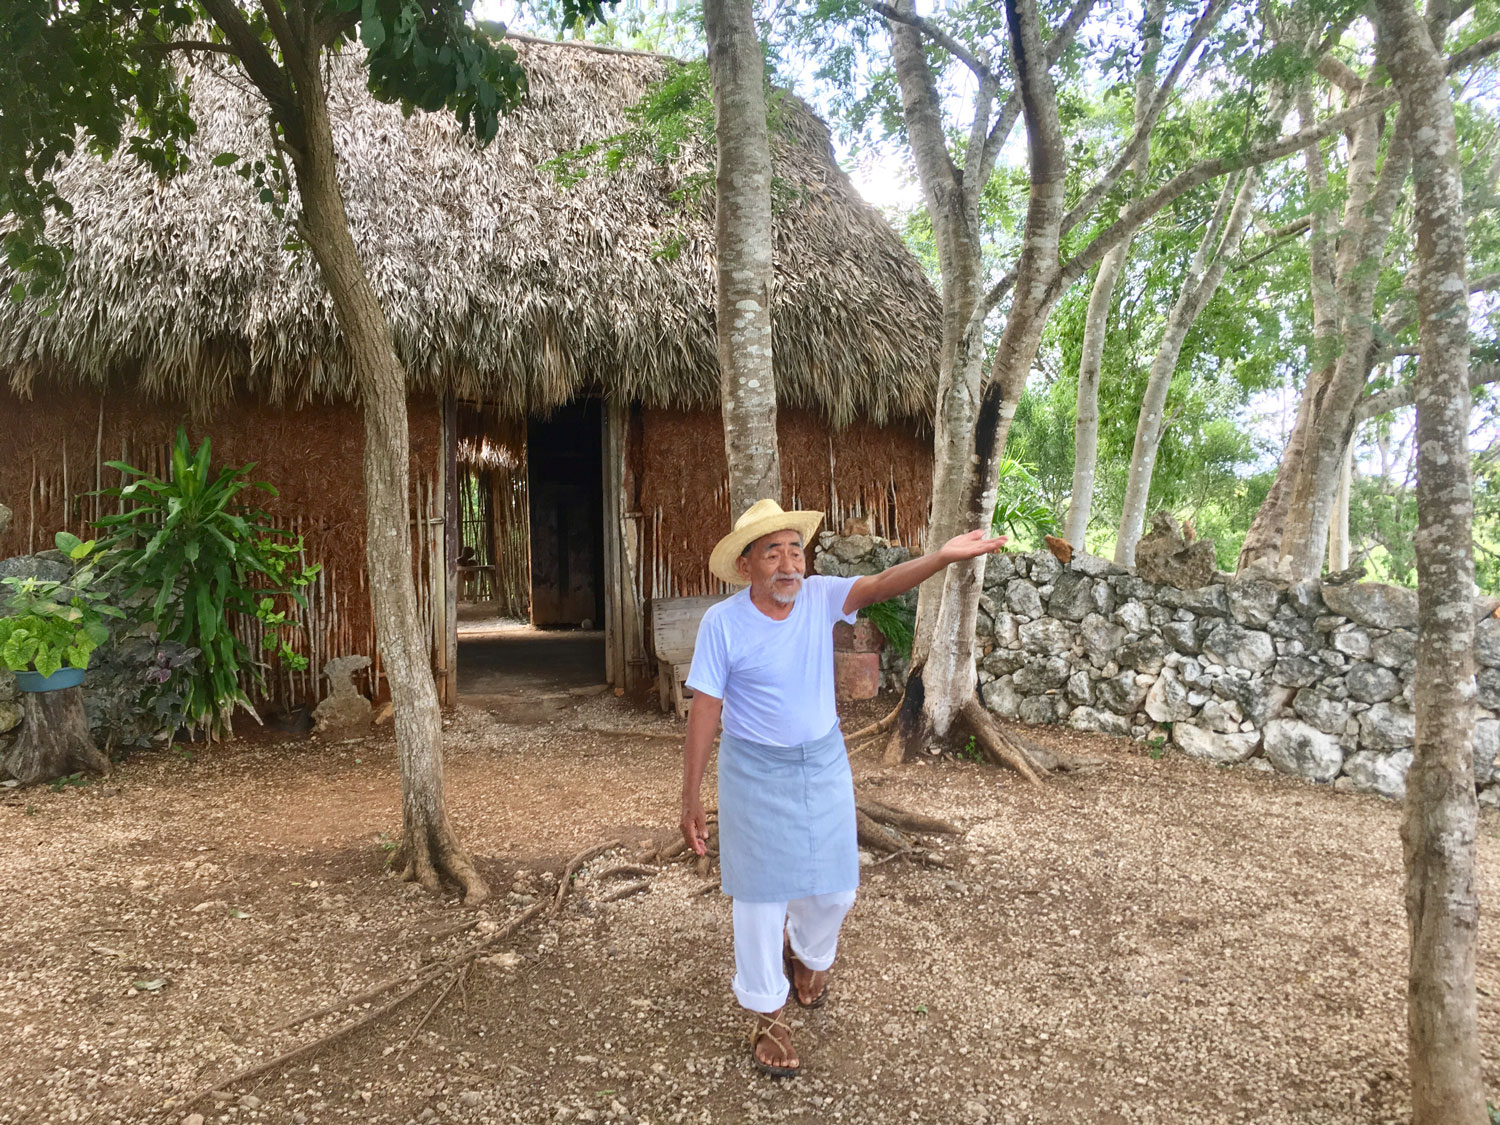 Don Antonio greeted us at the Mayan house amid the fields.